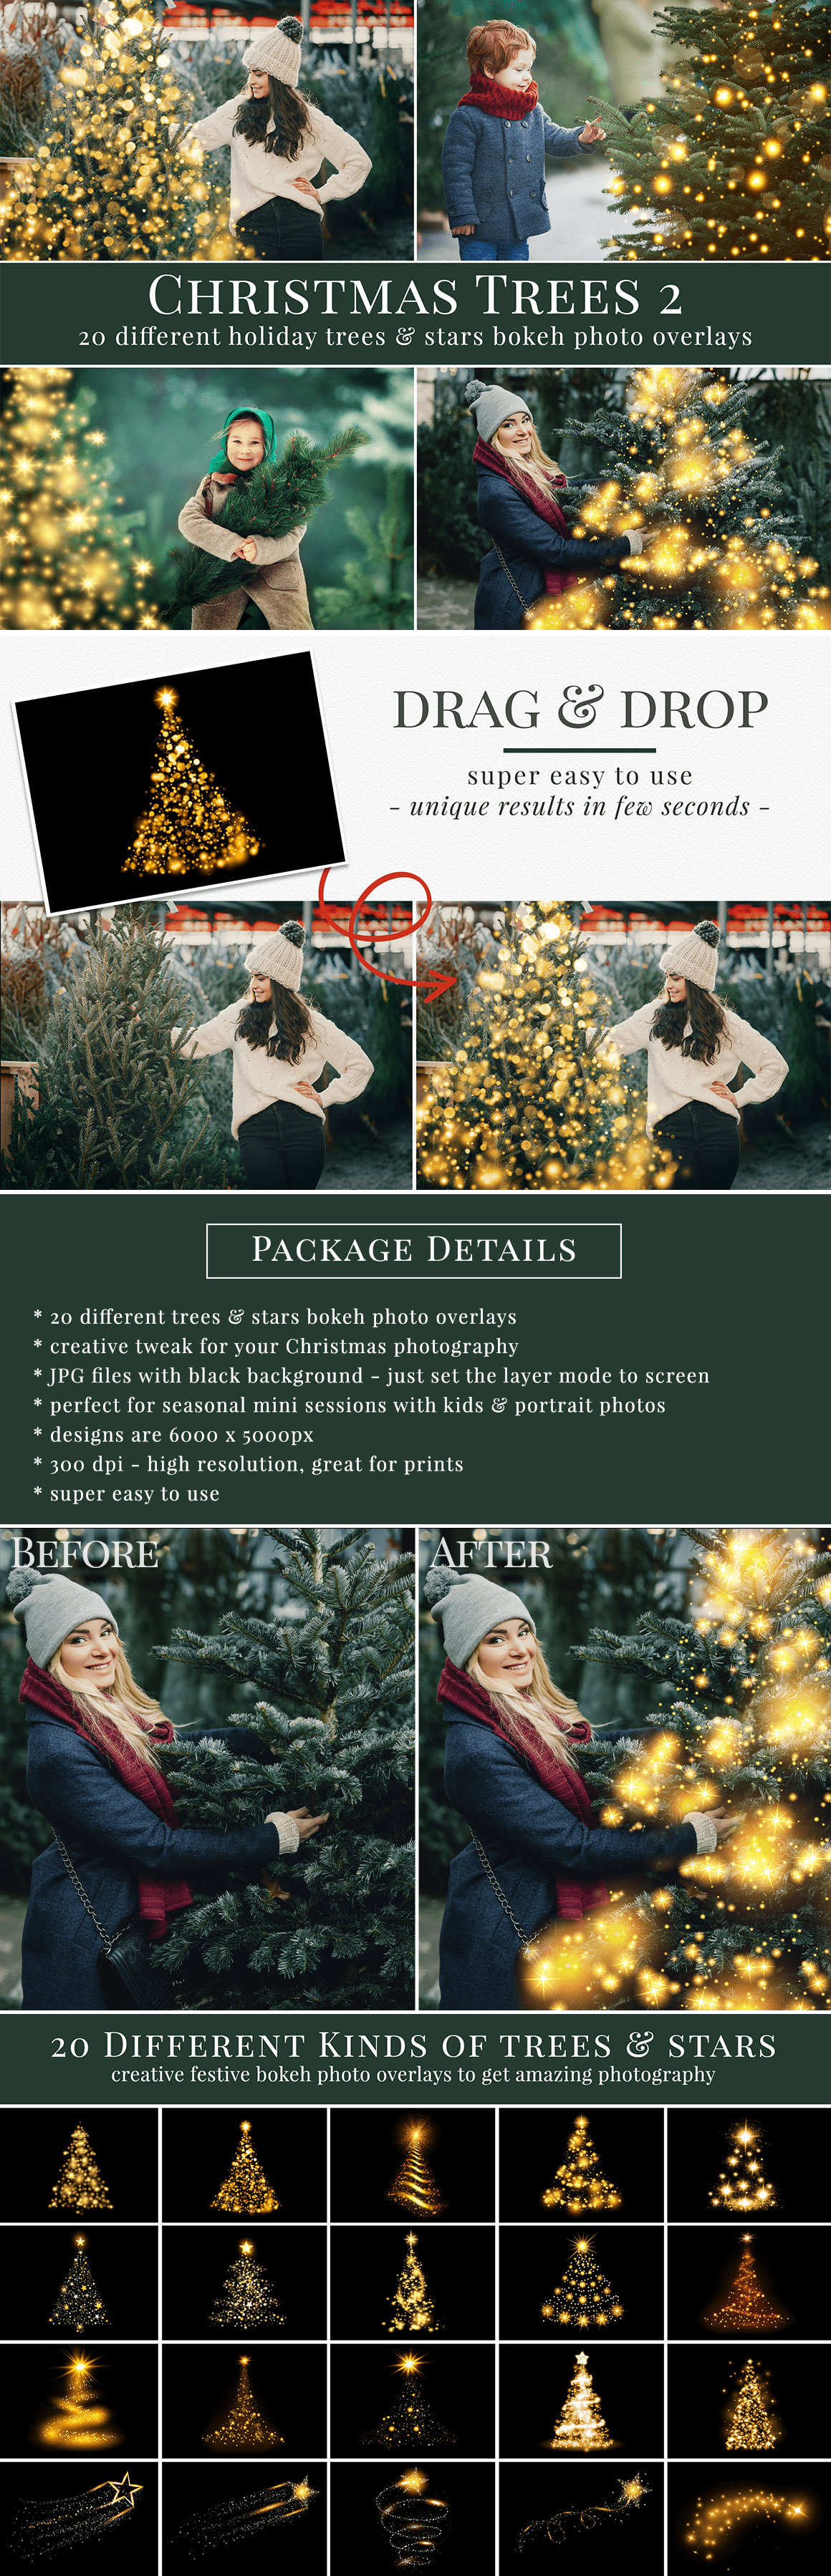 Christmas tree photo overlays to enhance your holiday photography. 20 different designs of trees & stars bokeh photo overlays. Great for Christmas mini sessions with kids, families & portrait photography. Drag & drop - very easy & quick to use, original results just in few seconds. Professional holiday photo overlays for Photoshop, Zoner, Gimp, PicMoneky, Canva, etc. Photo overlays for creative photographers from Brown Leopard.